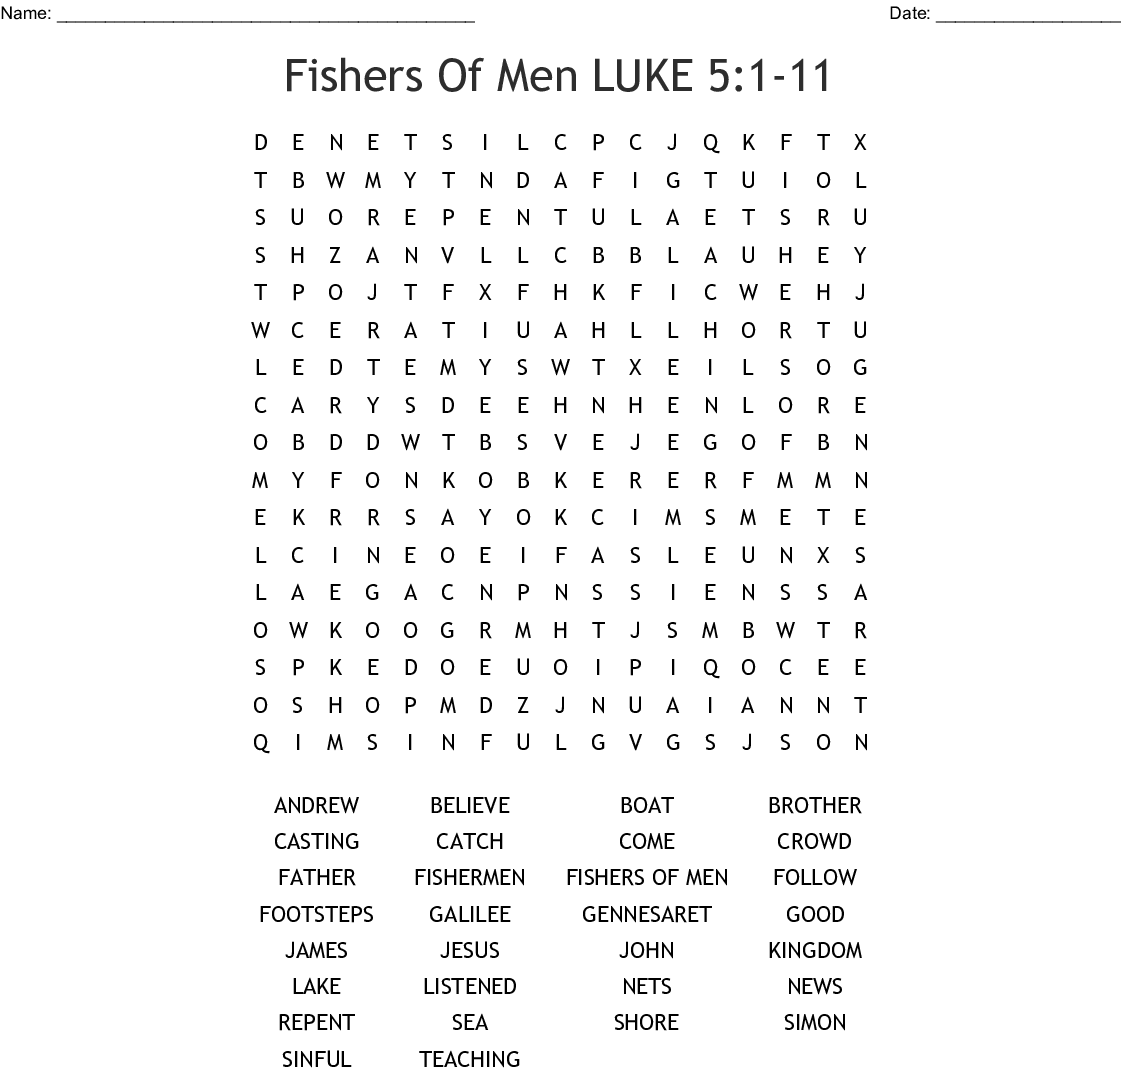 Fishers Of Men Word Search